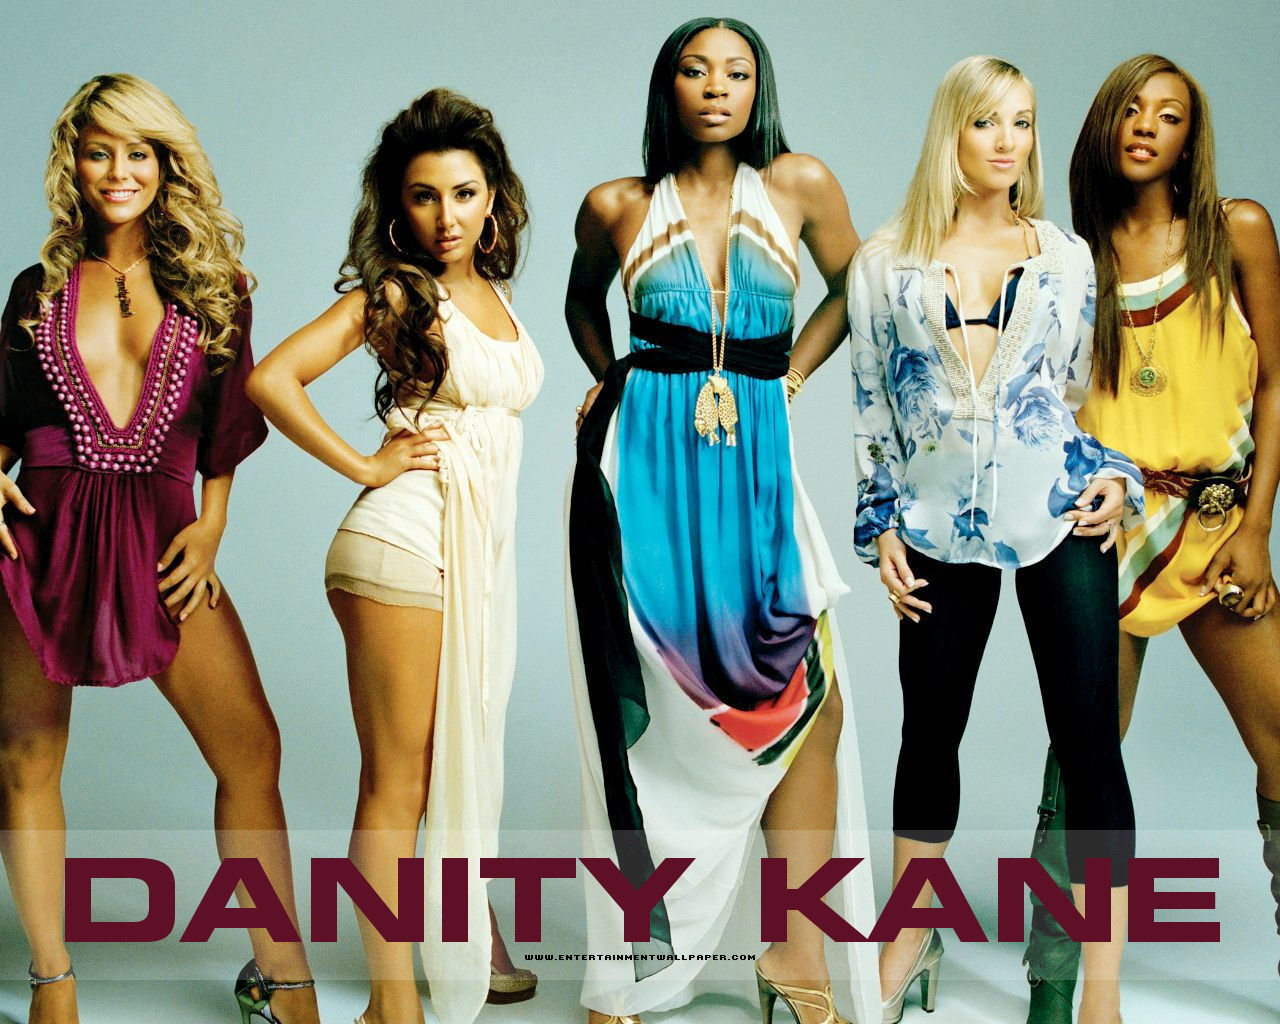 Danity Kane - Official Site